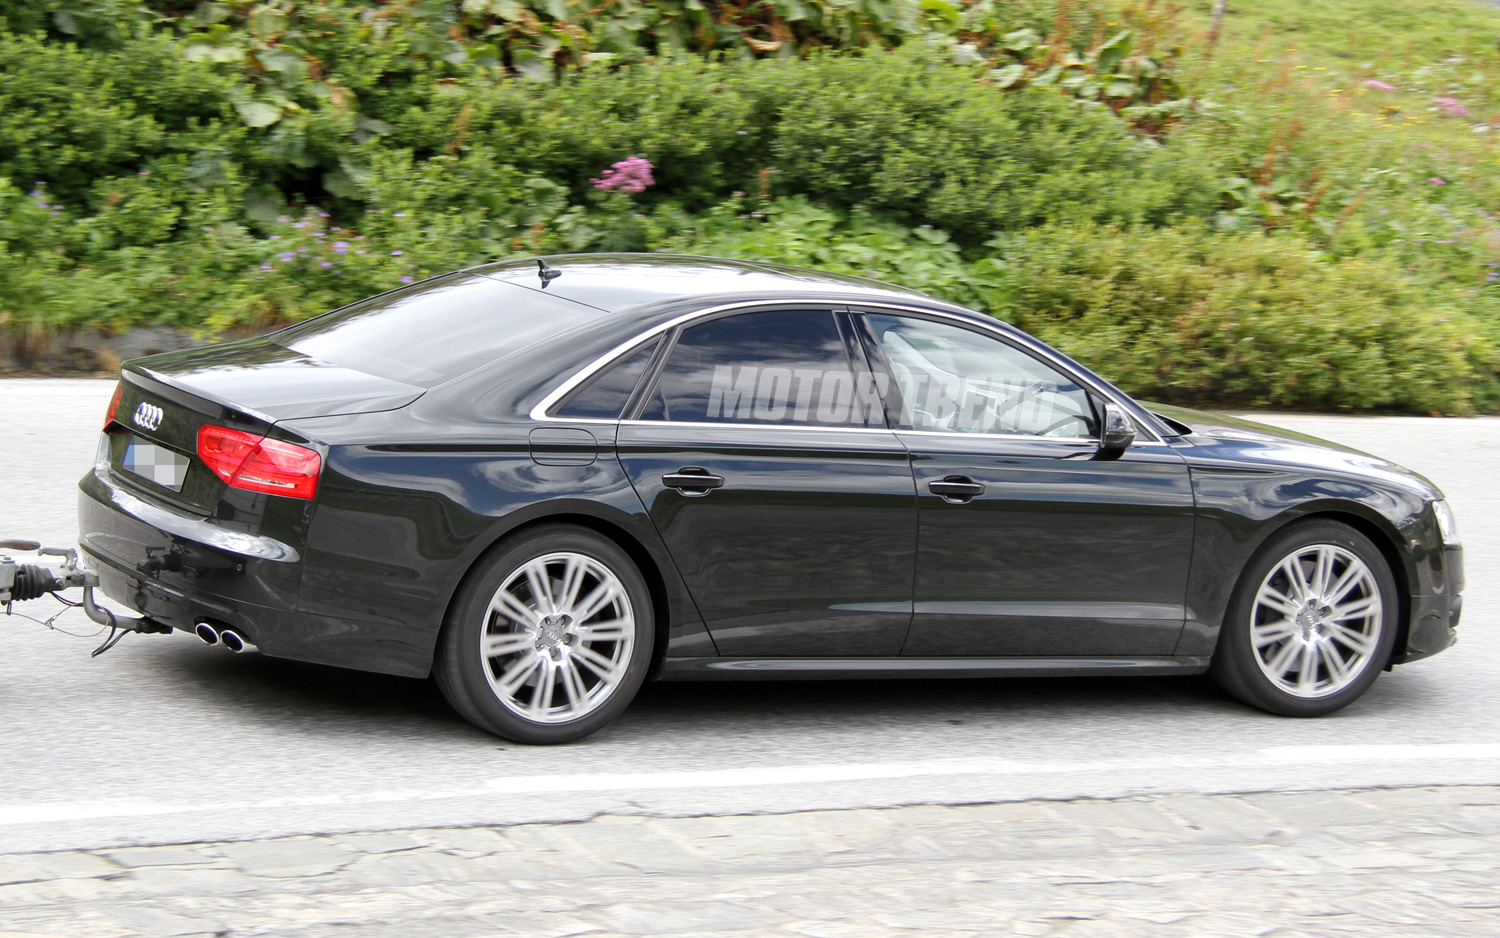 Pictures of audi s8 d4 2011 #14